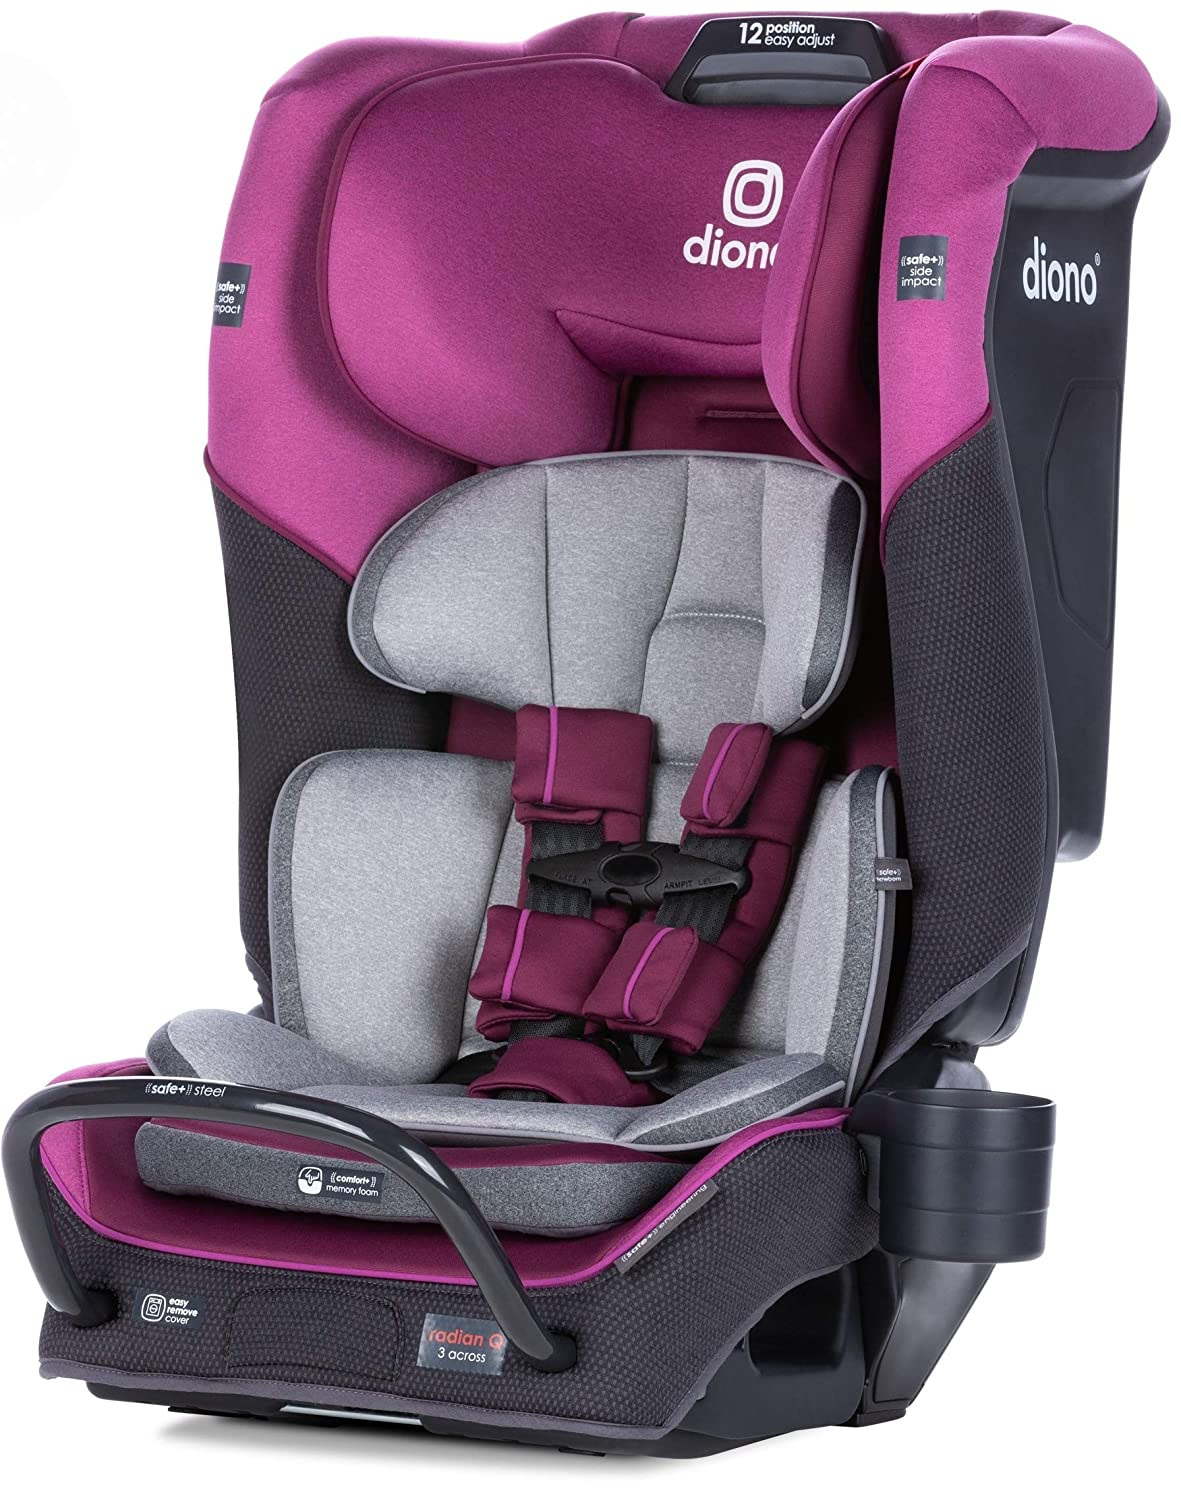 Diono 2020 Radian 3QX Latch Black Jet All-in-One Convertible Car Seat